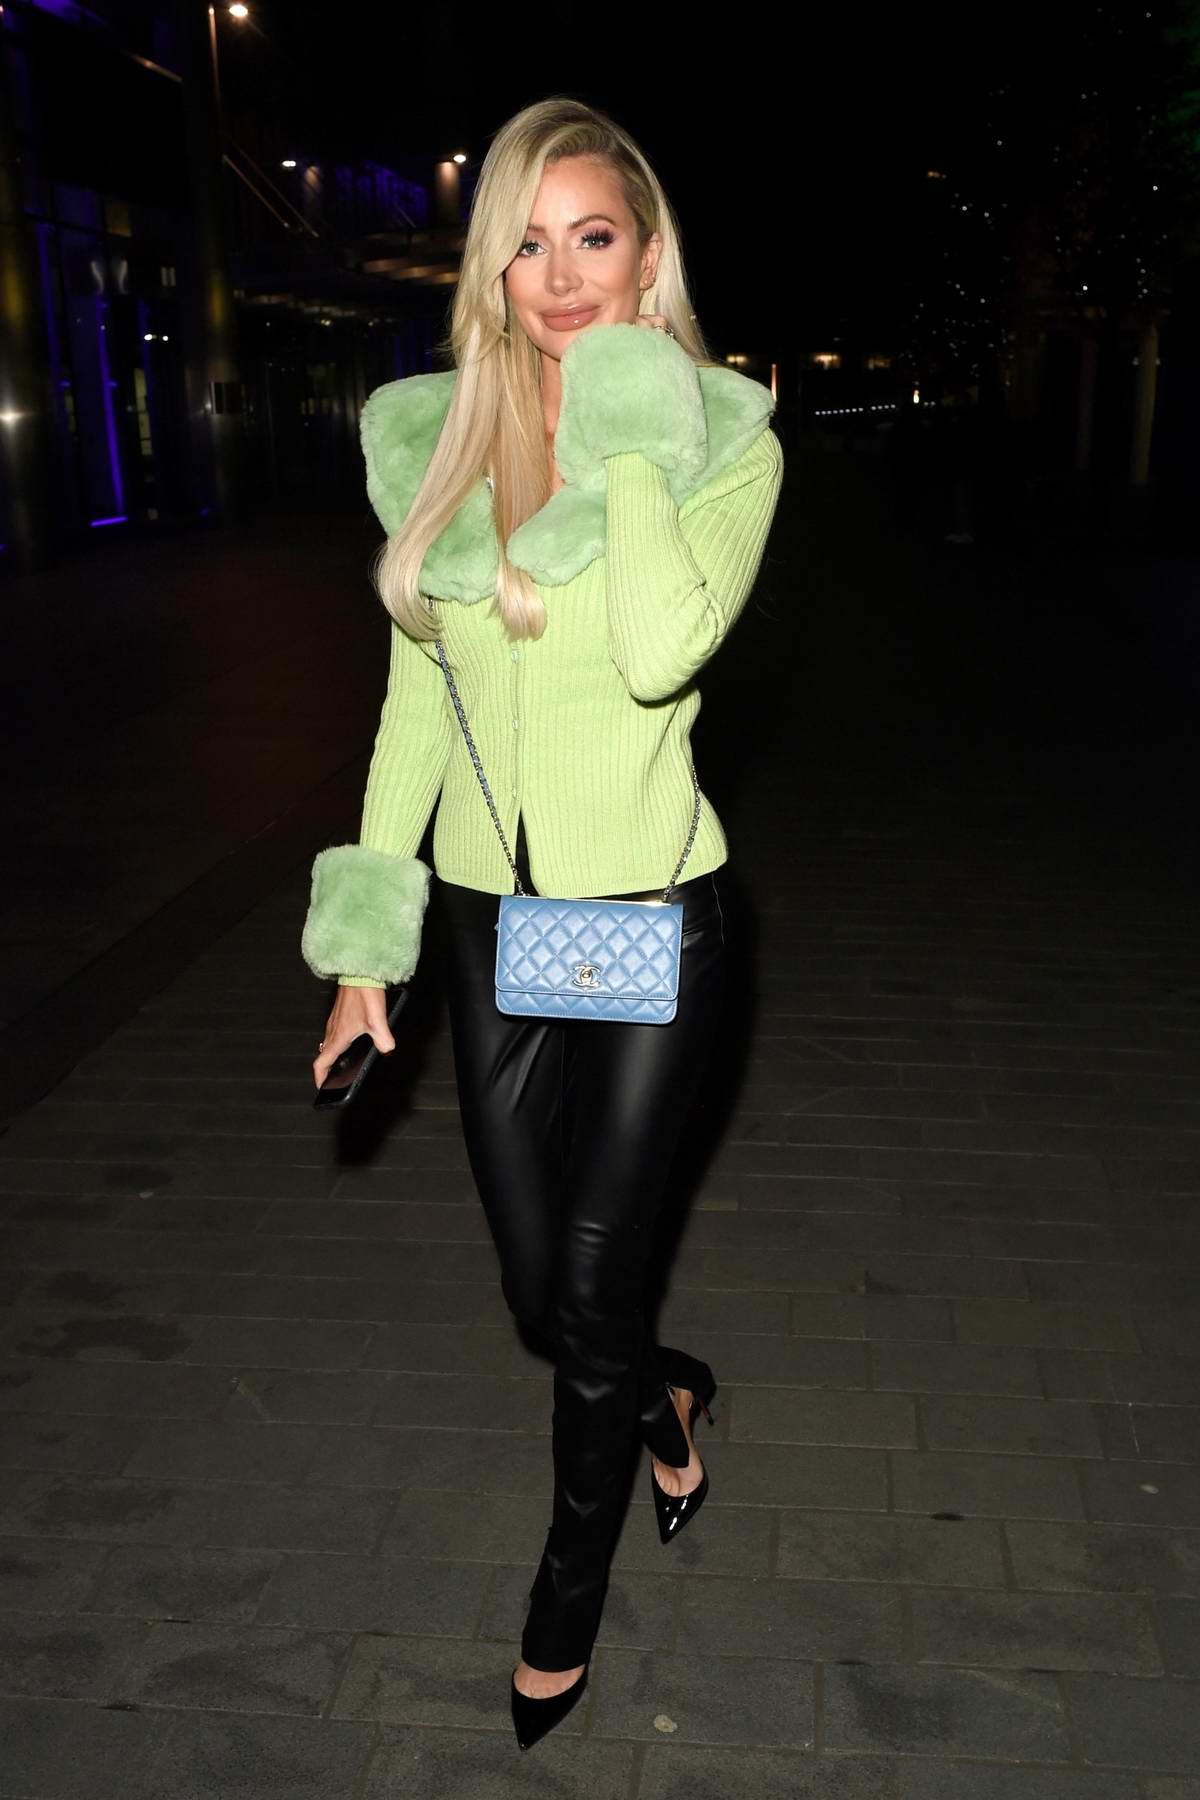 Olivia Attwood seen leaving after filming her new show 'Olivia Meets Her Match' at The XYZ Bar in Manchester, UK